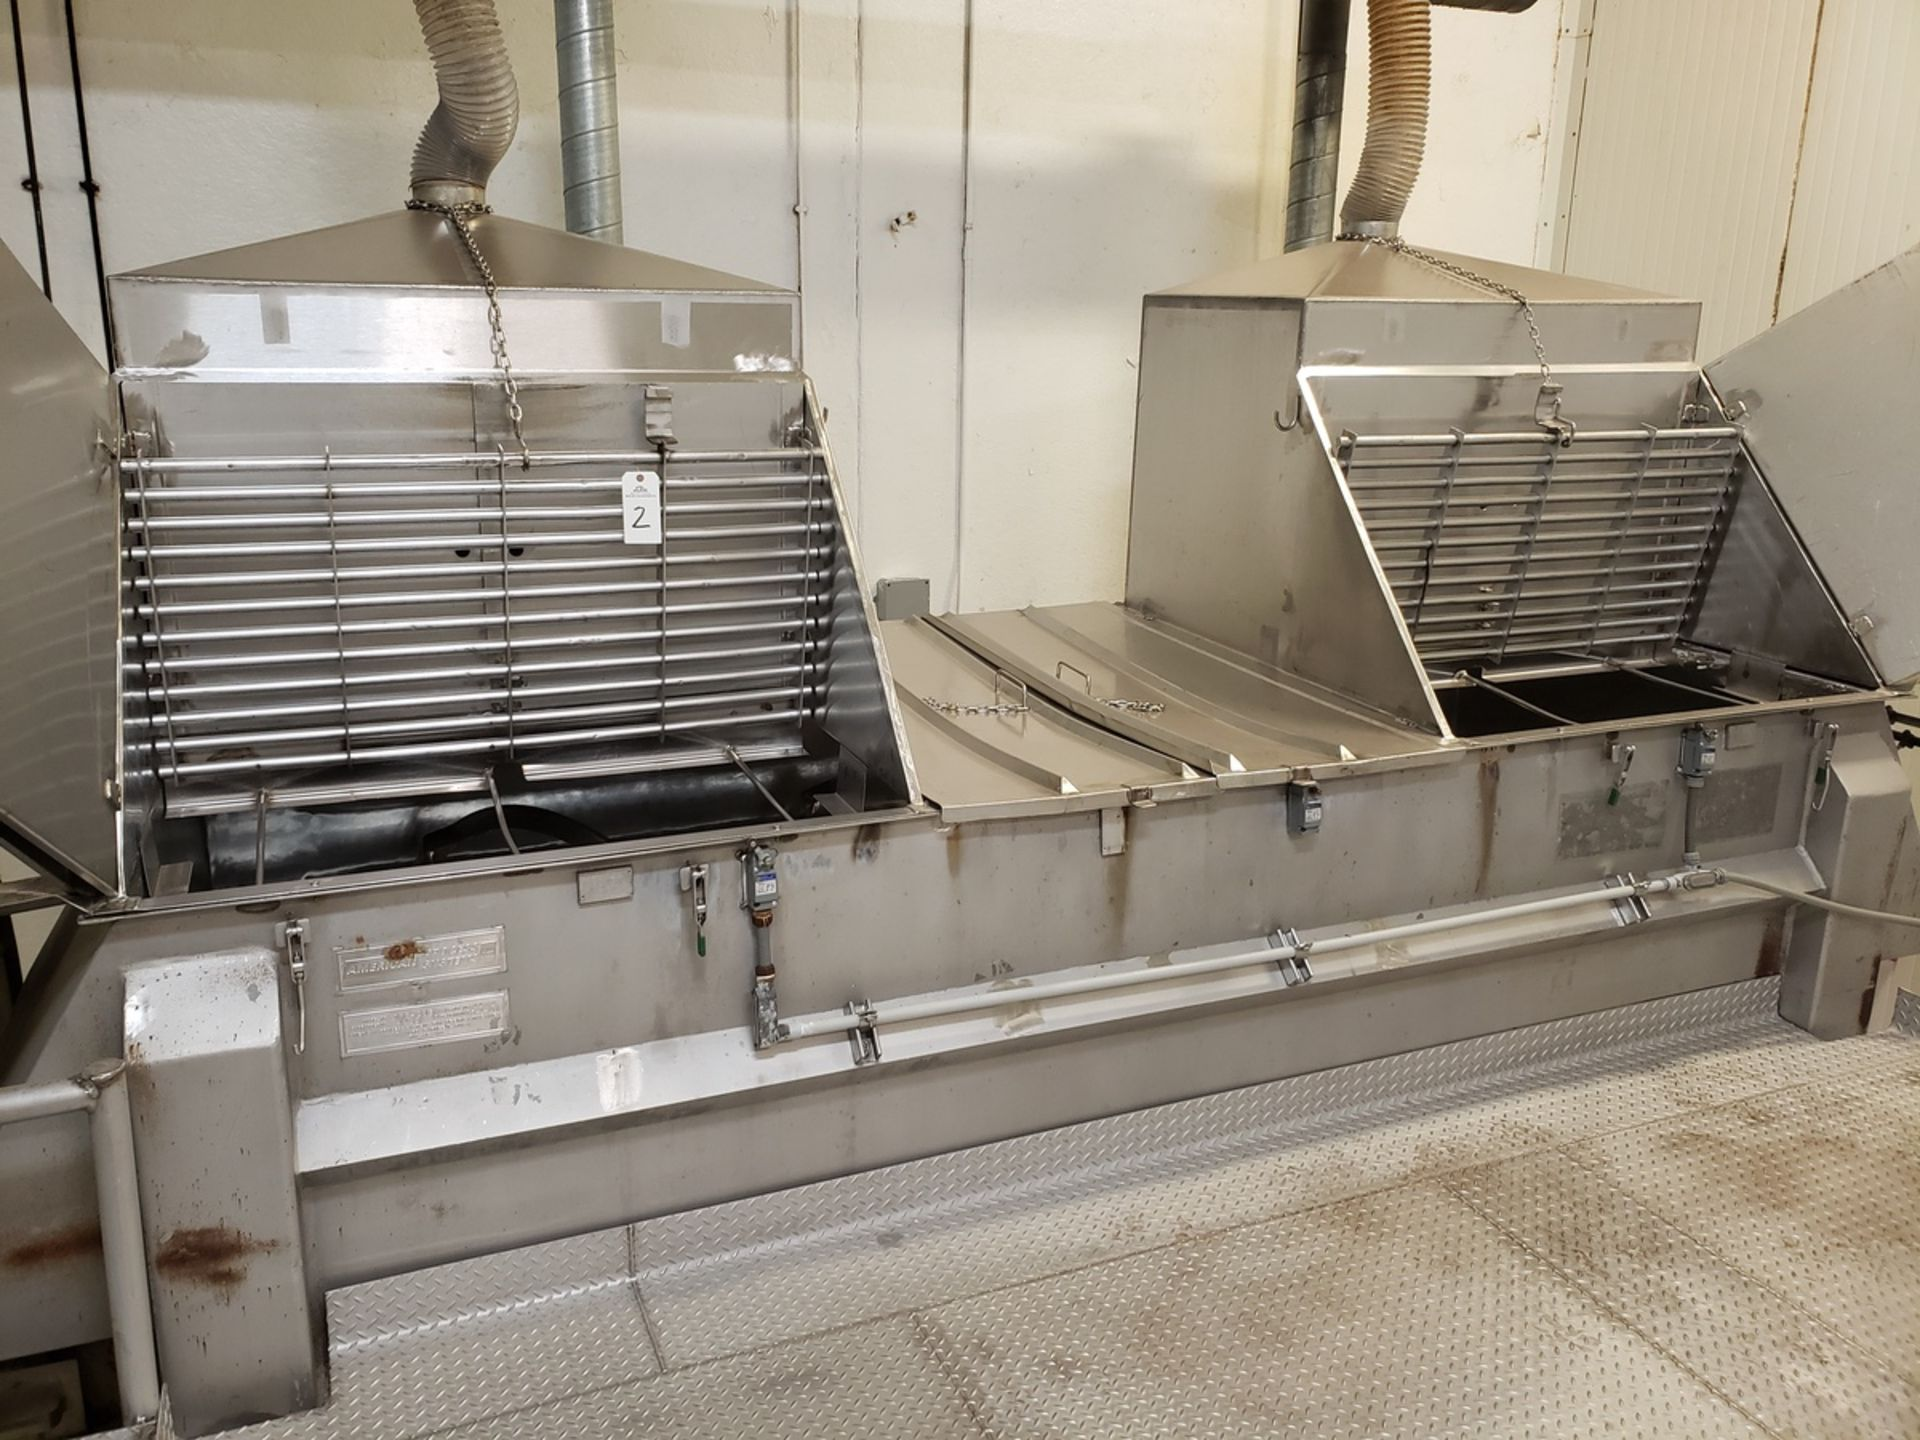 Lot 2 - Ribbon Blender - American Process Systems Stainless Steel Ribbon Blender, - Loc: NJ | Rig Fee: $3500